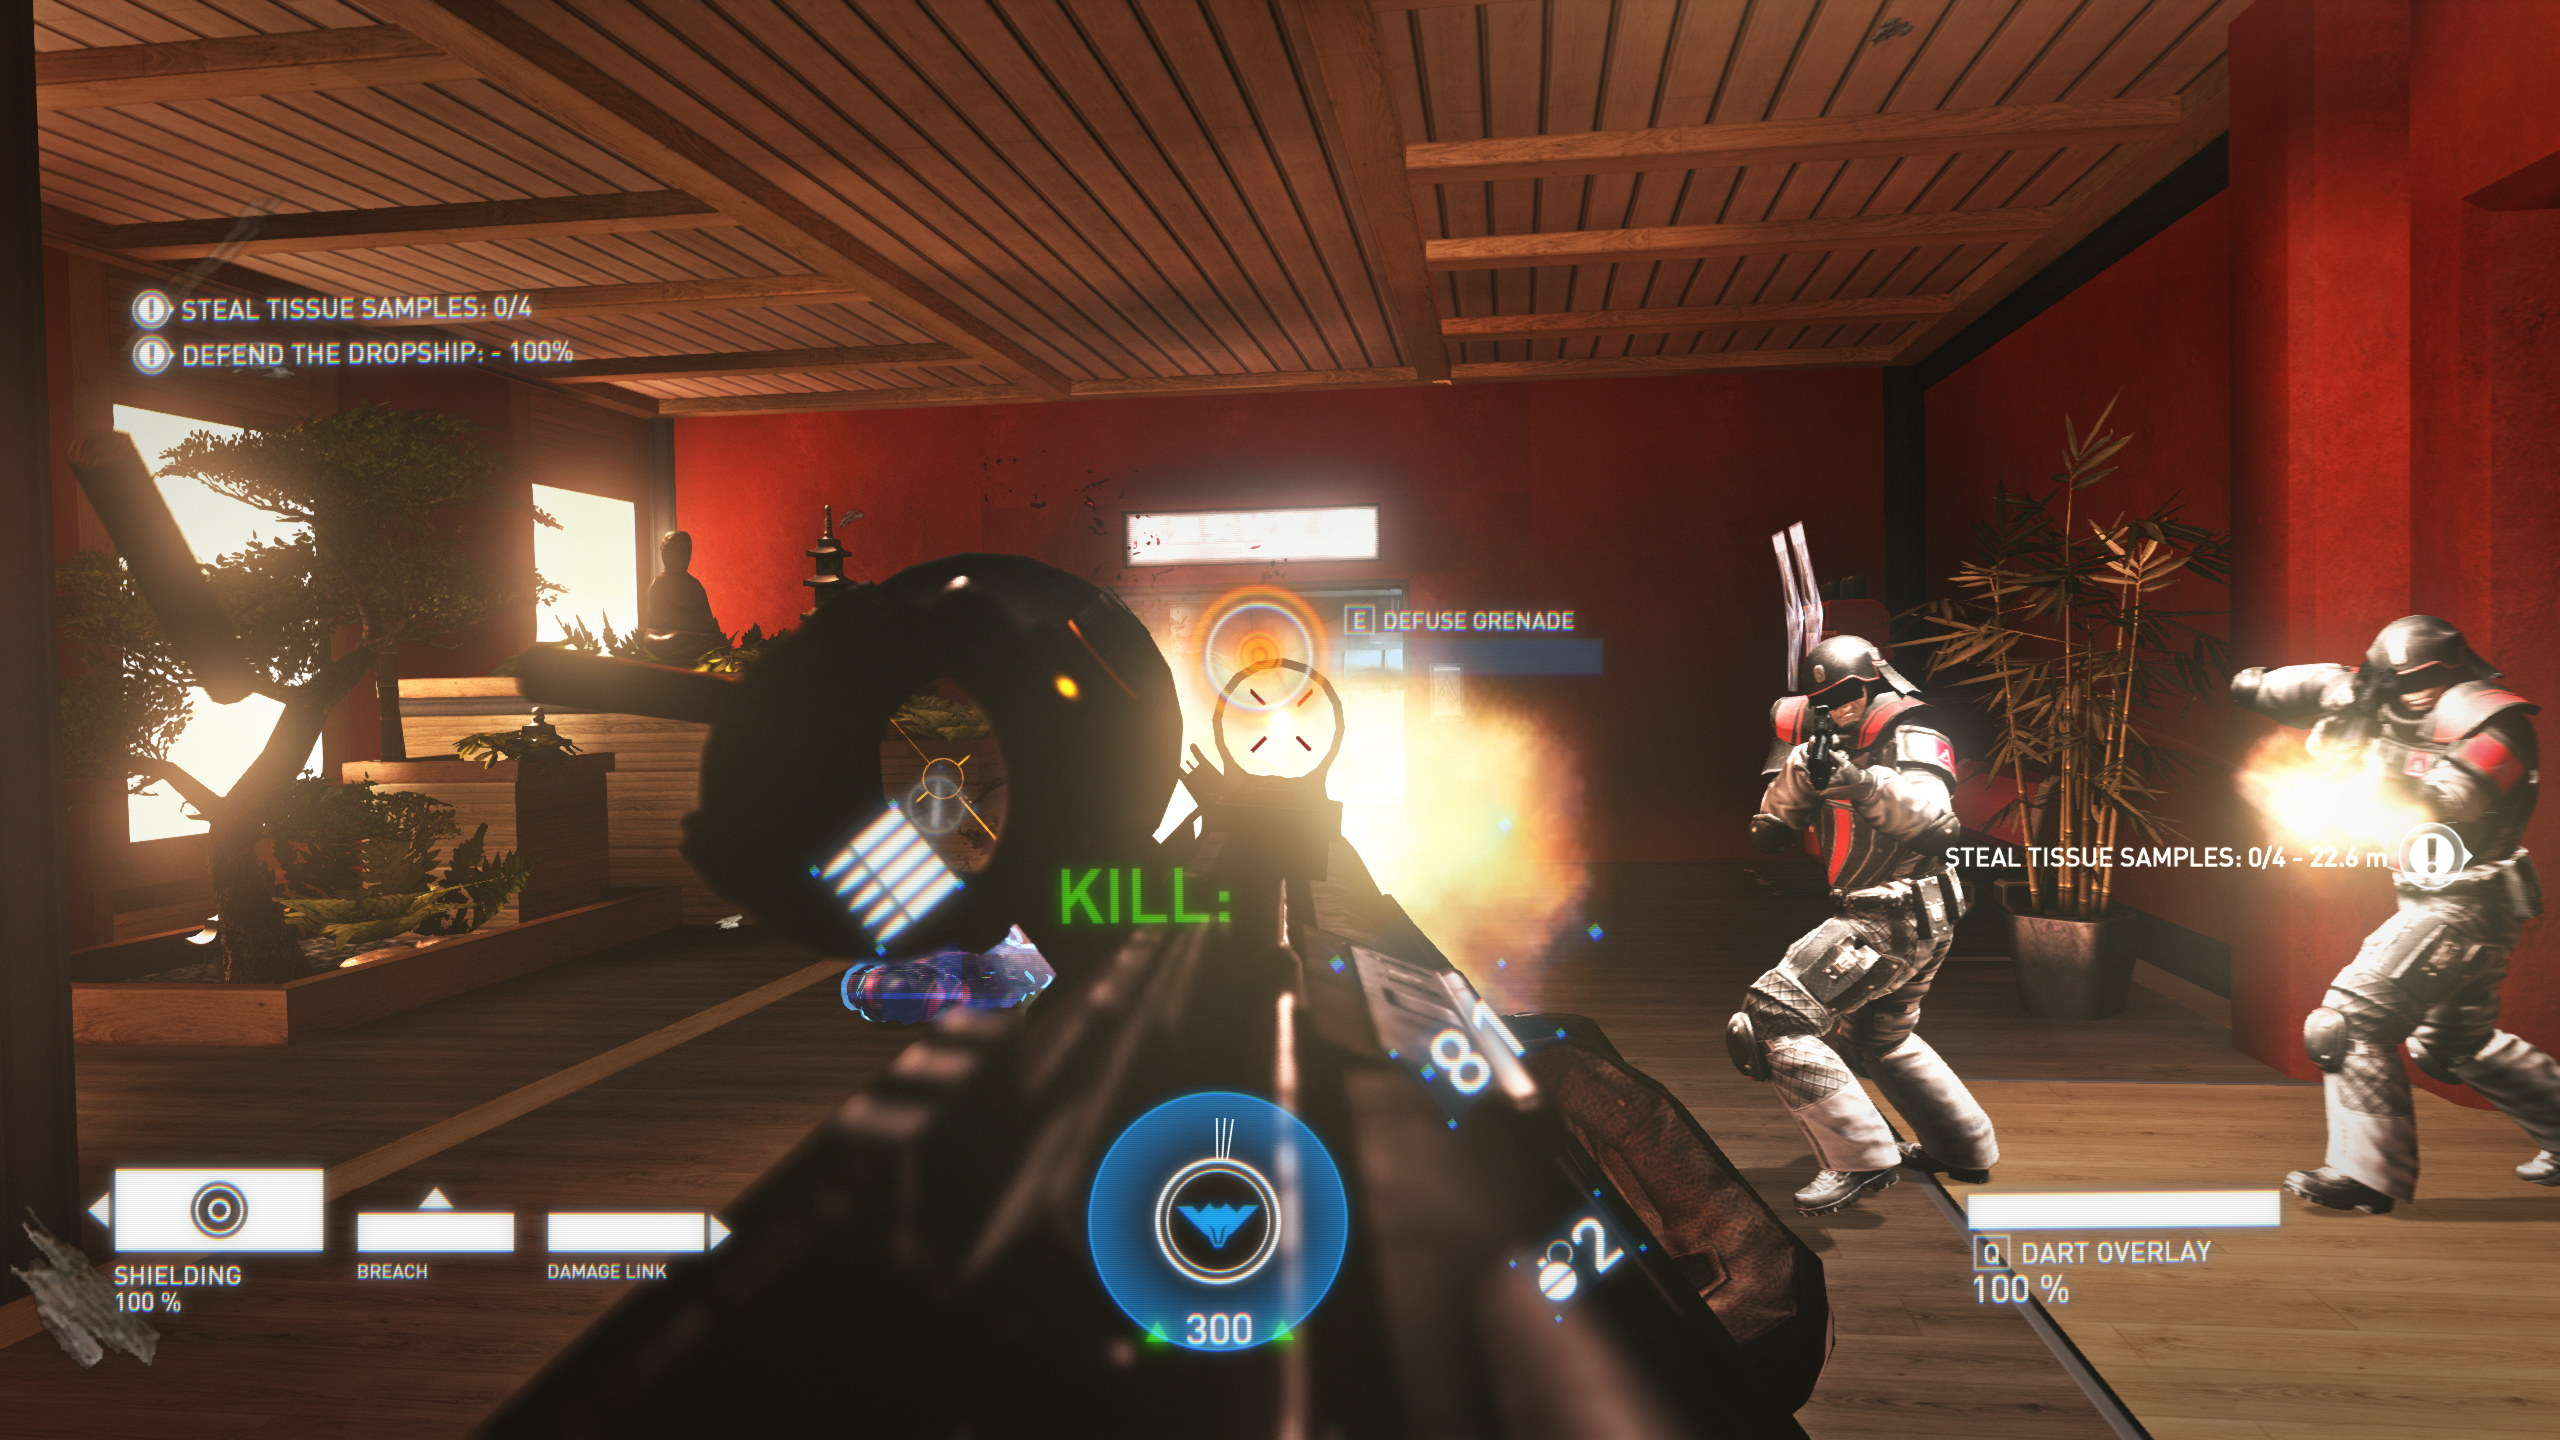 A screenshot from Syndicate; several heavily armoured goons are attacking the protagonist, who is firing back. There is a lot of muzzle flash.